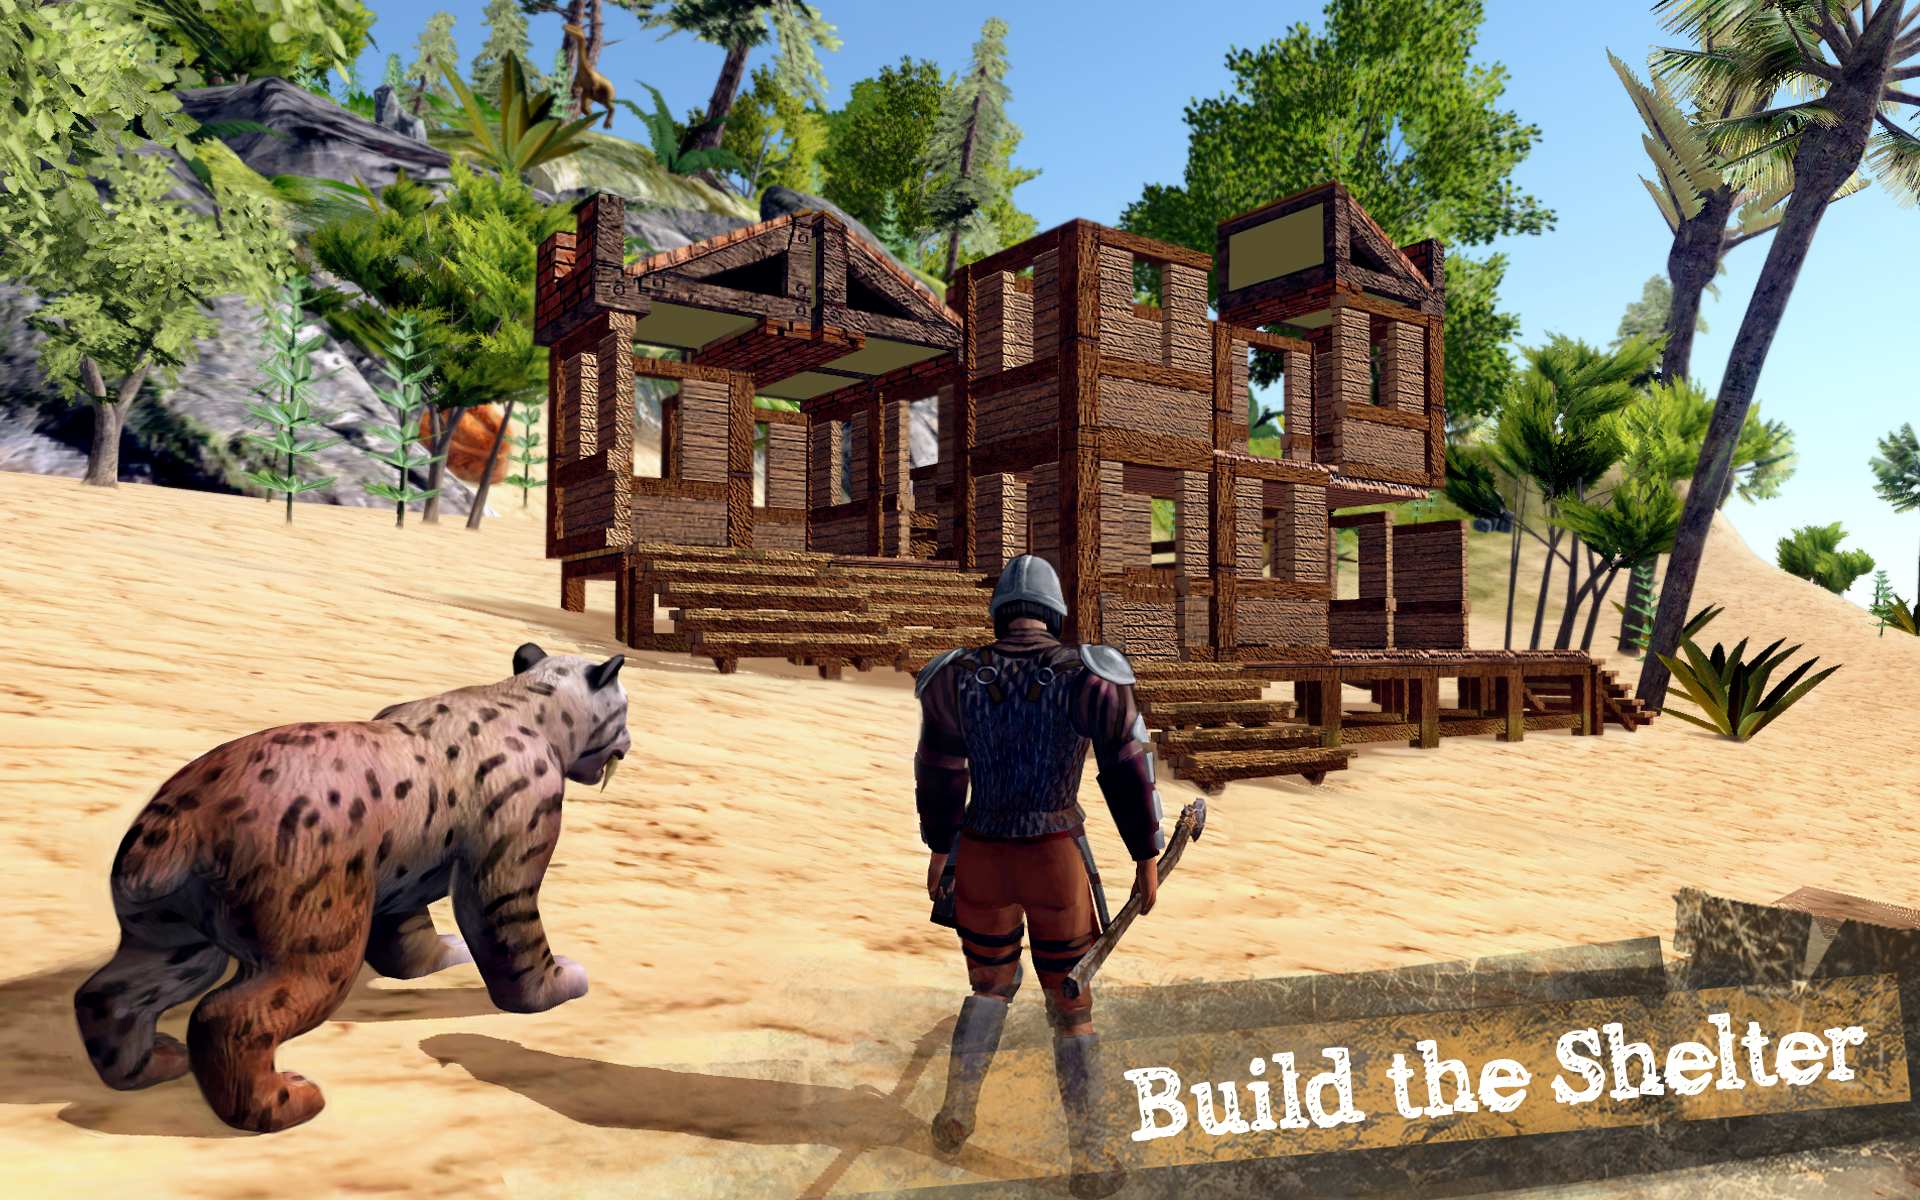 Amazon.com: The Ark of Craft: Dinosaurs: Appstore for Android